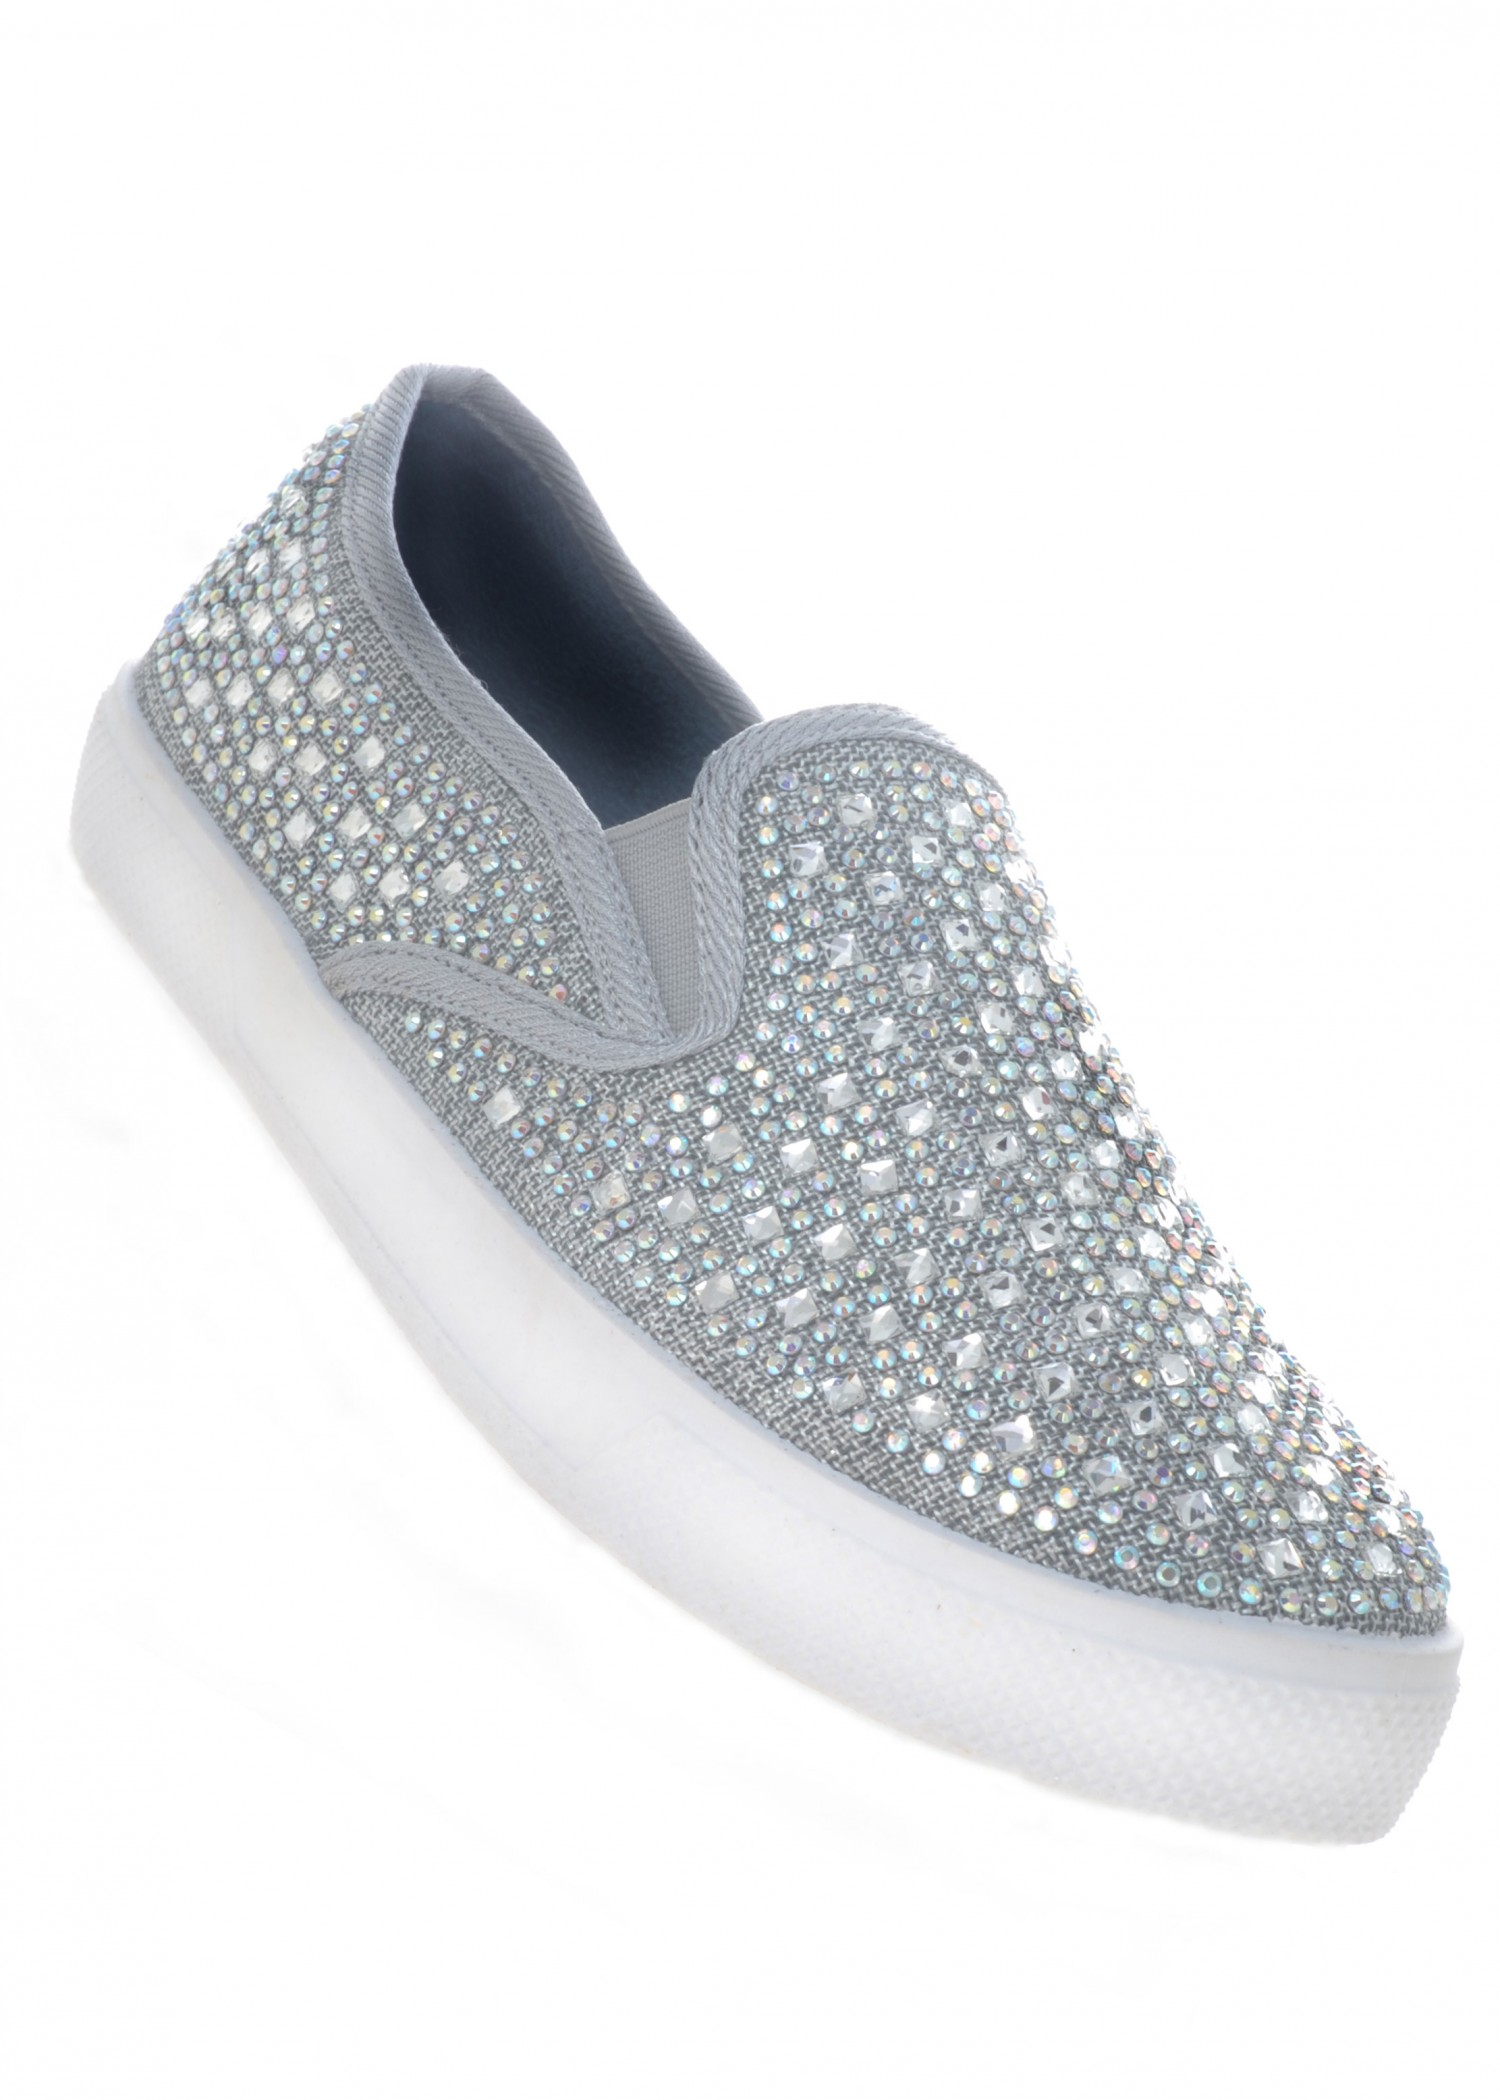 Your Party Shoes Peyton Crystal Beaded Slip On Sneakers